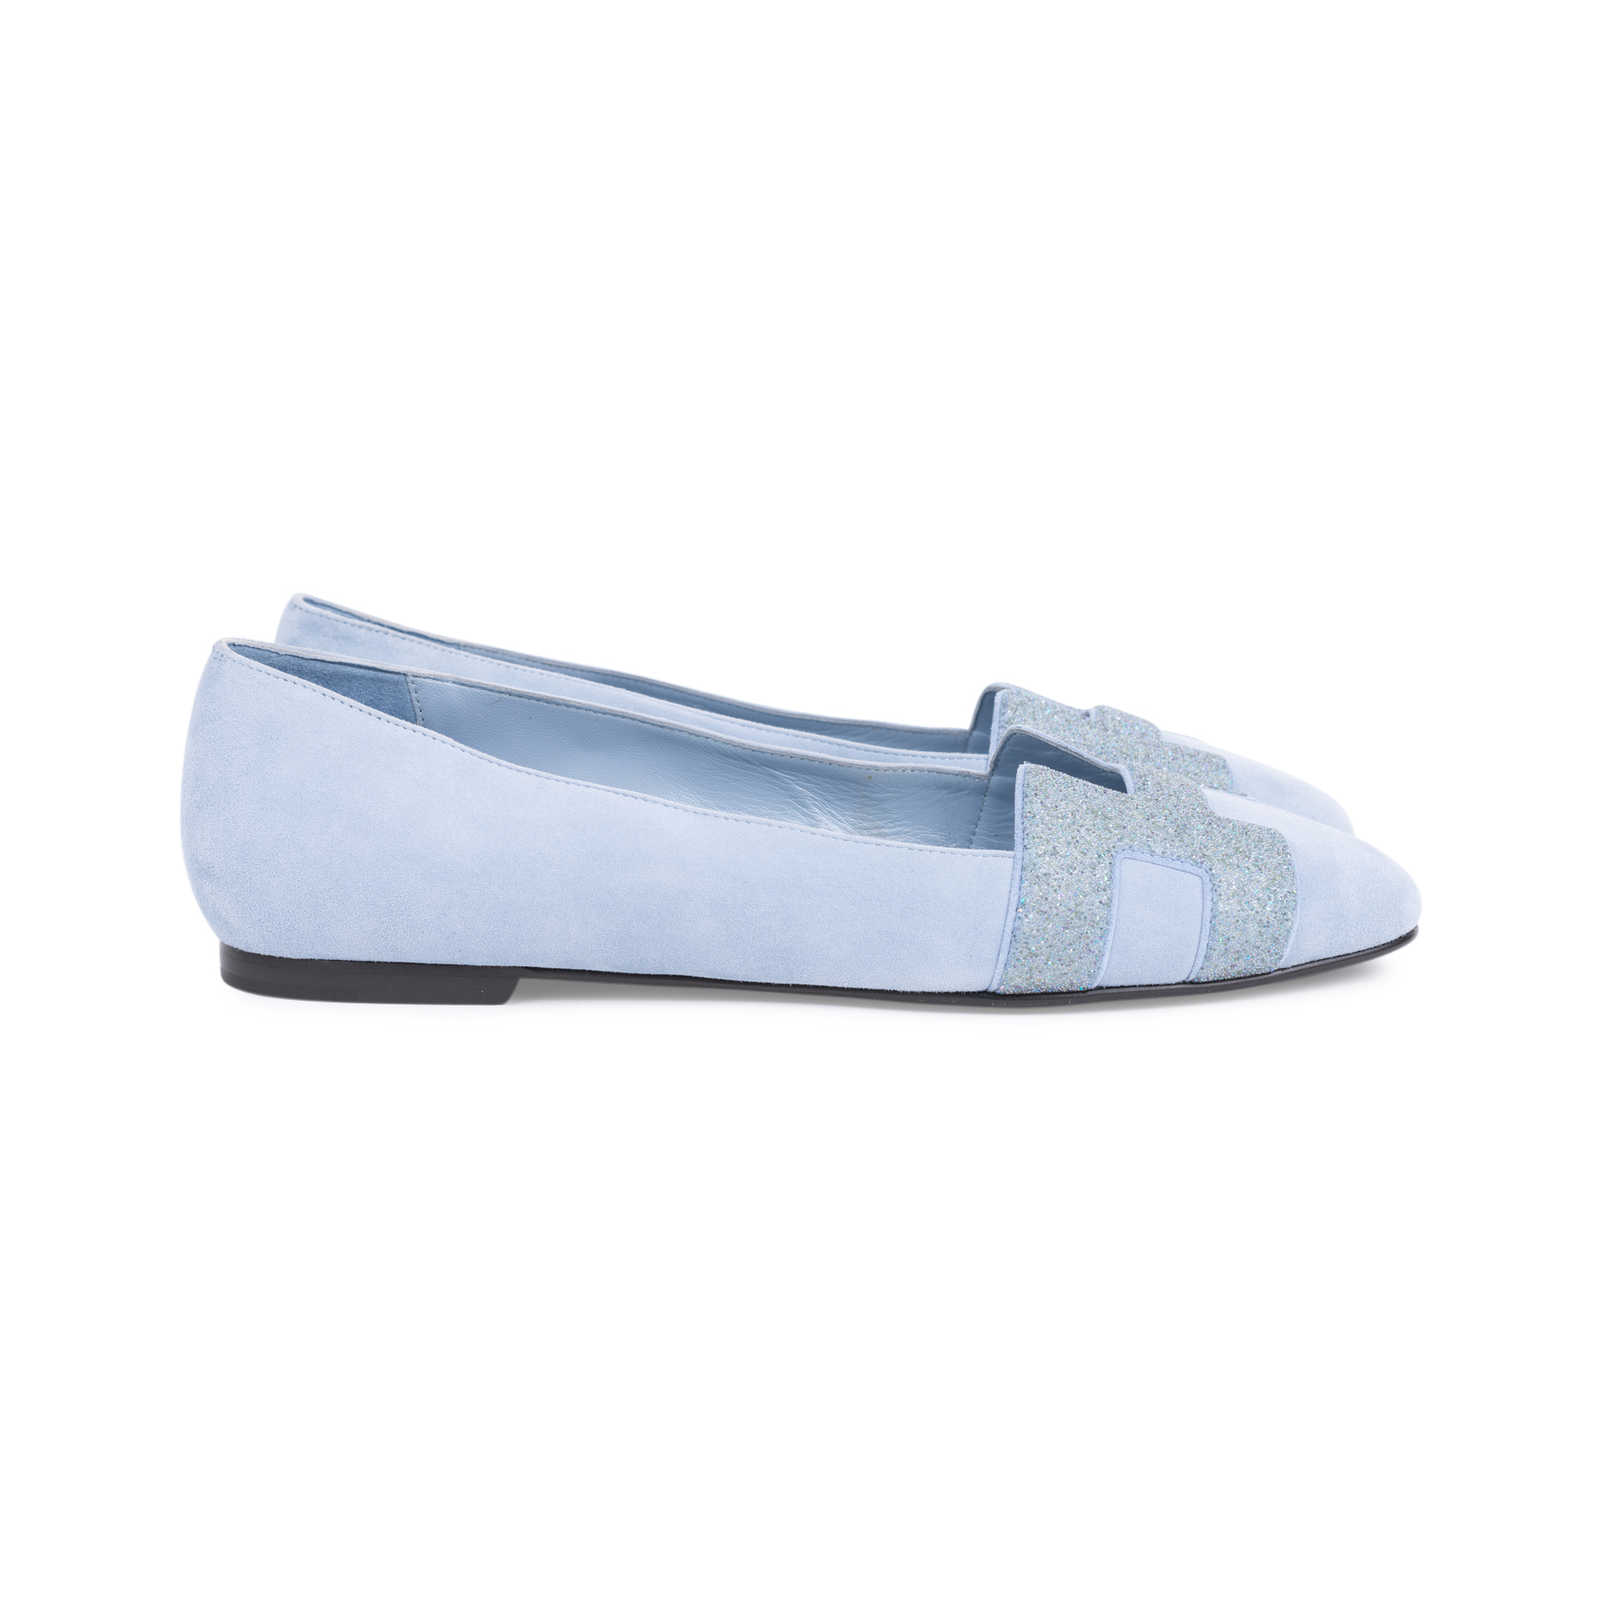 7cd630840ea7 ... Authentic Second Hand Hermès Nice Ballerina Flats (PSS-051-00421) -  Thumbnail ...